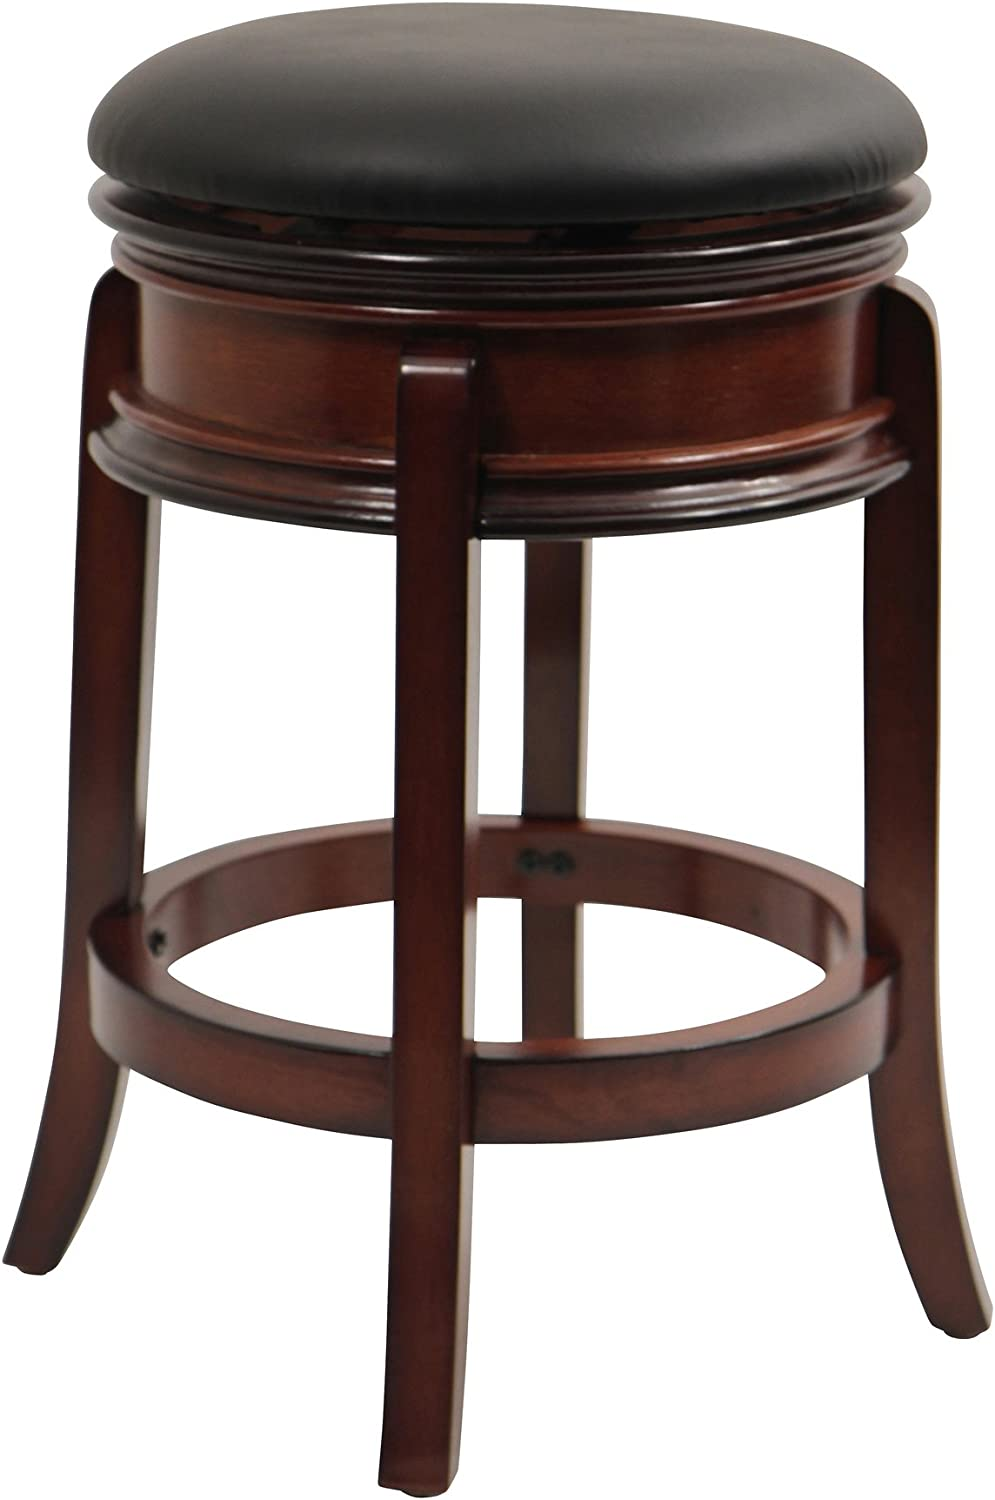 Winsome Wood Tabby Stool, 30-Inch, Cherry